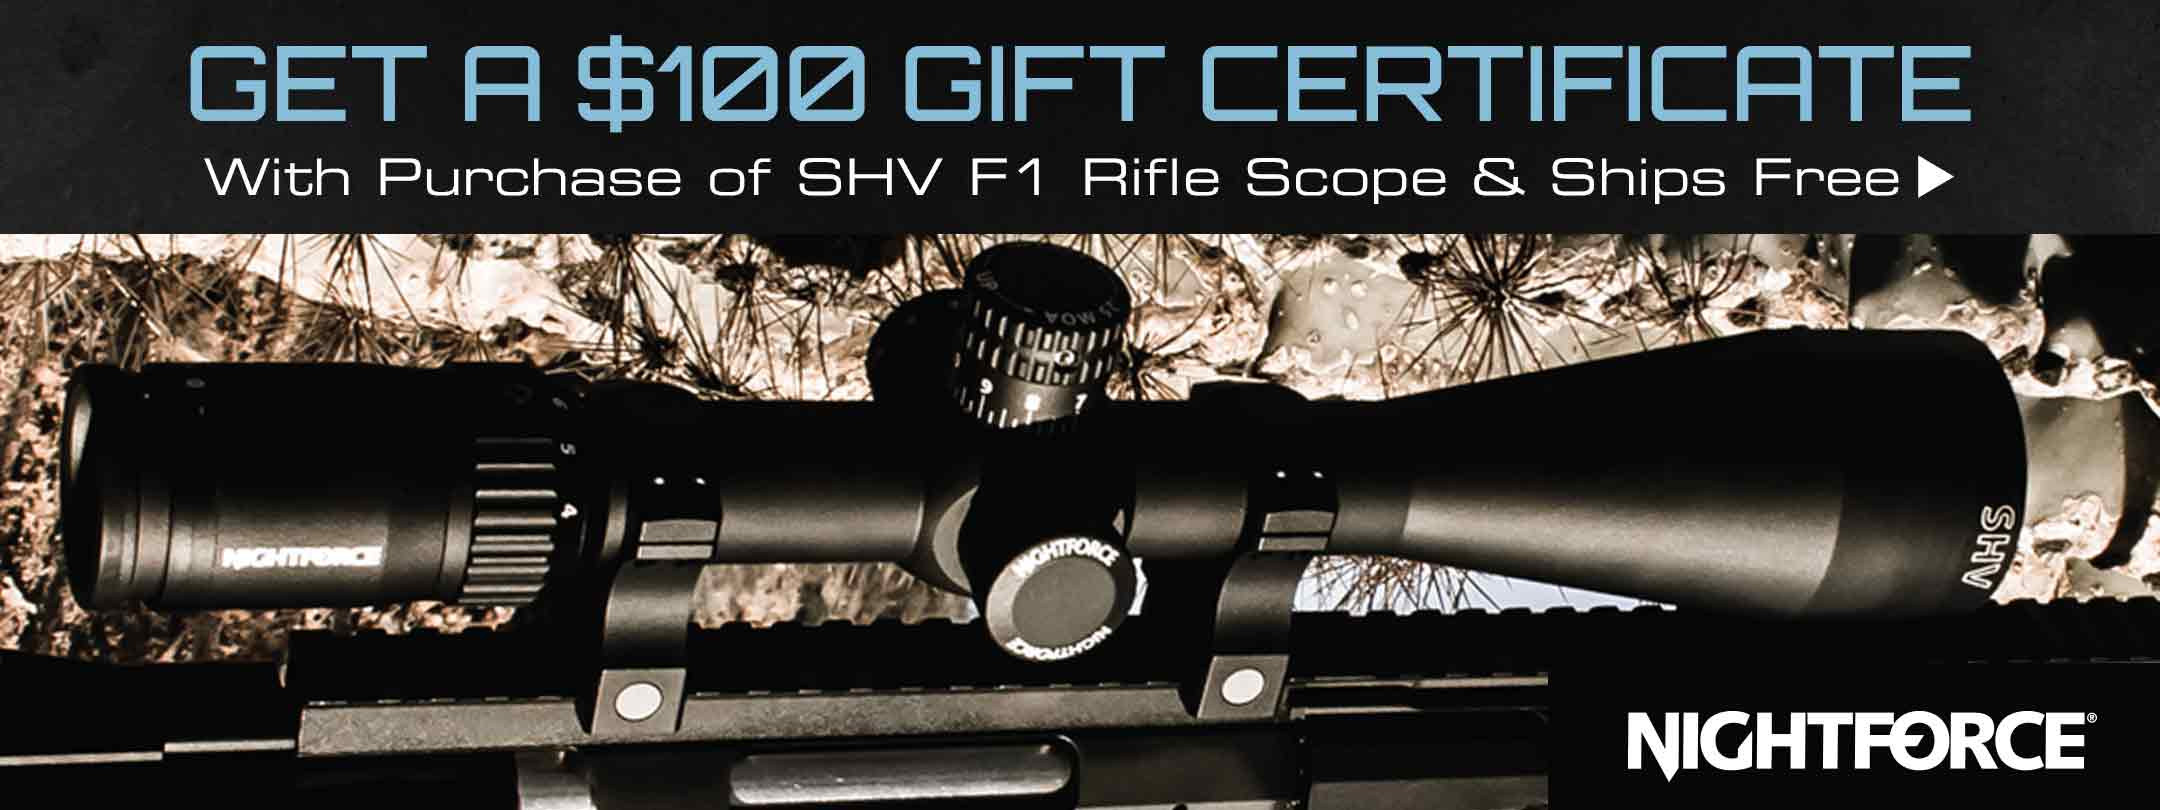 $100 Gift Certificate with Purchase of SHV F1 Rifle Scope